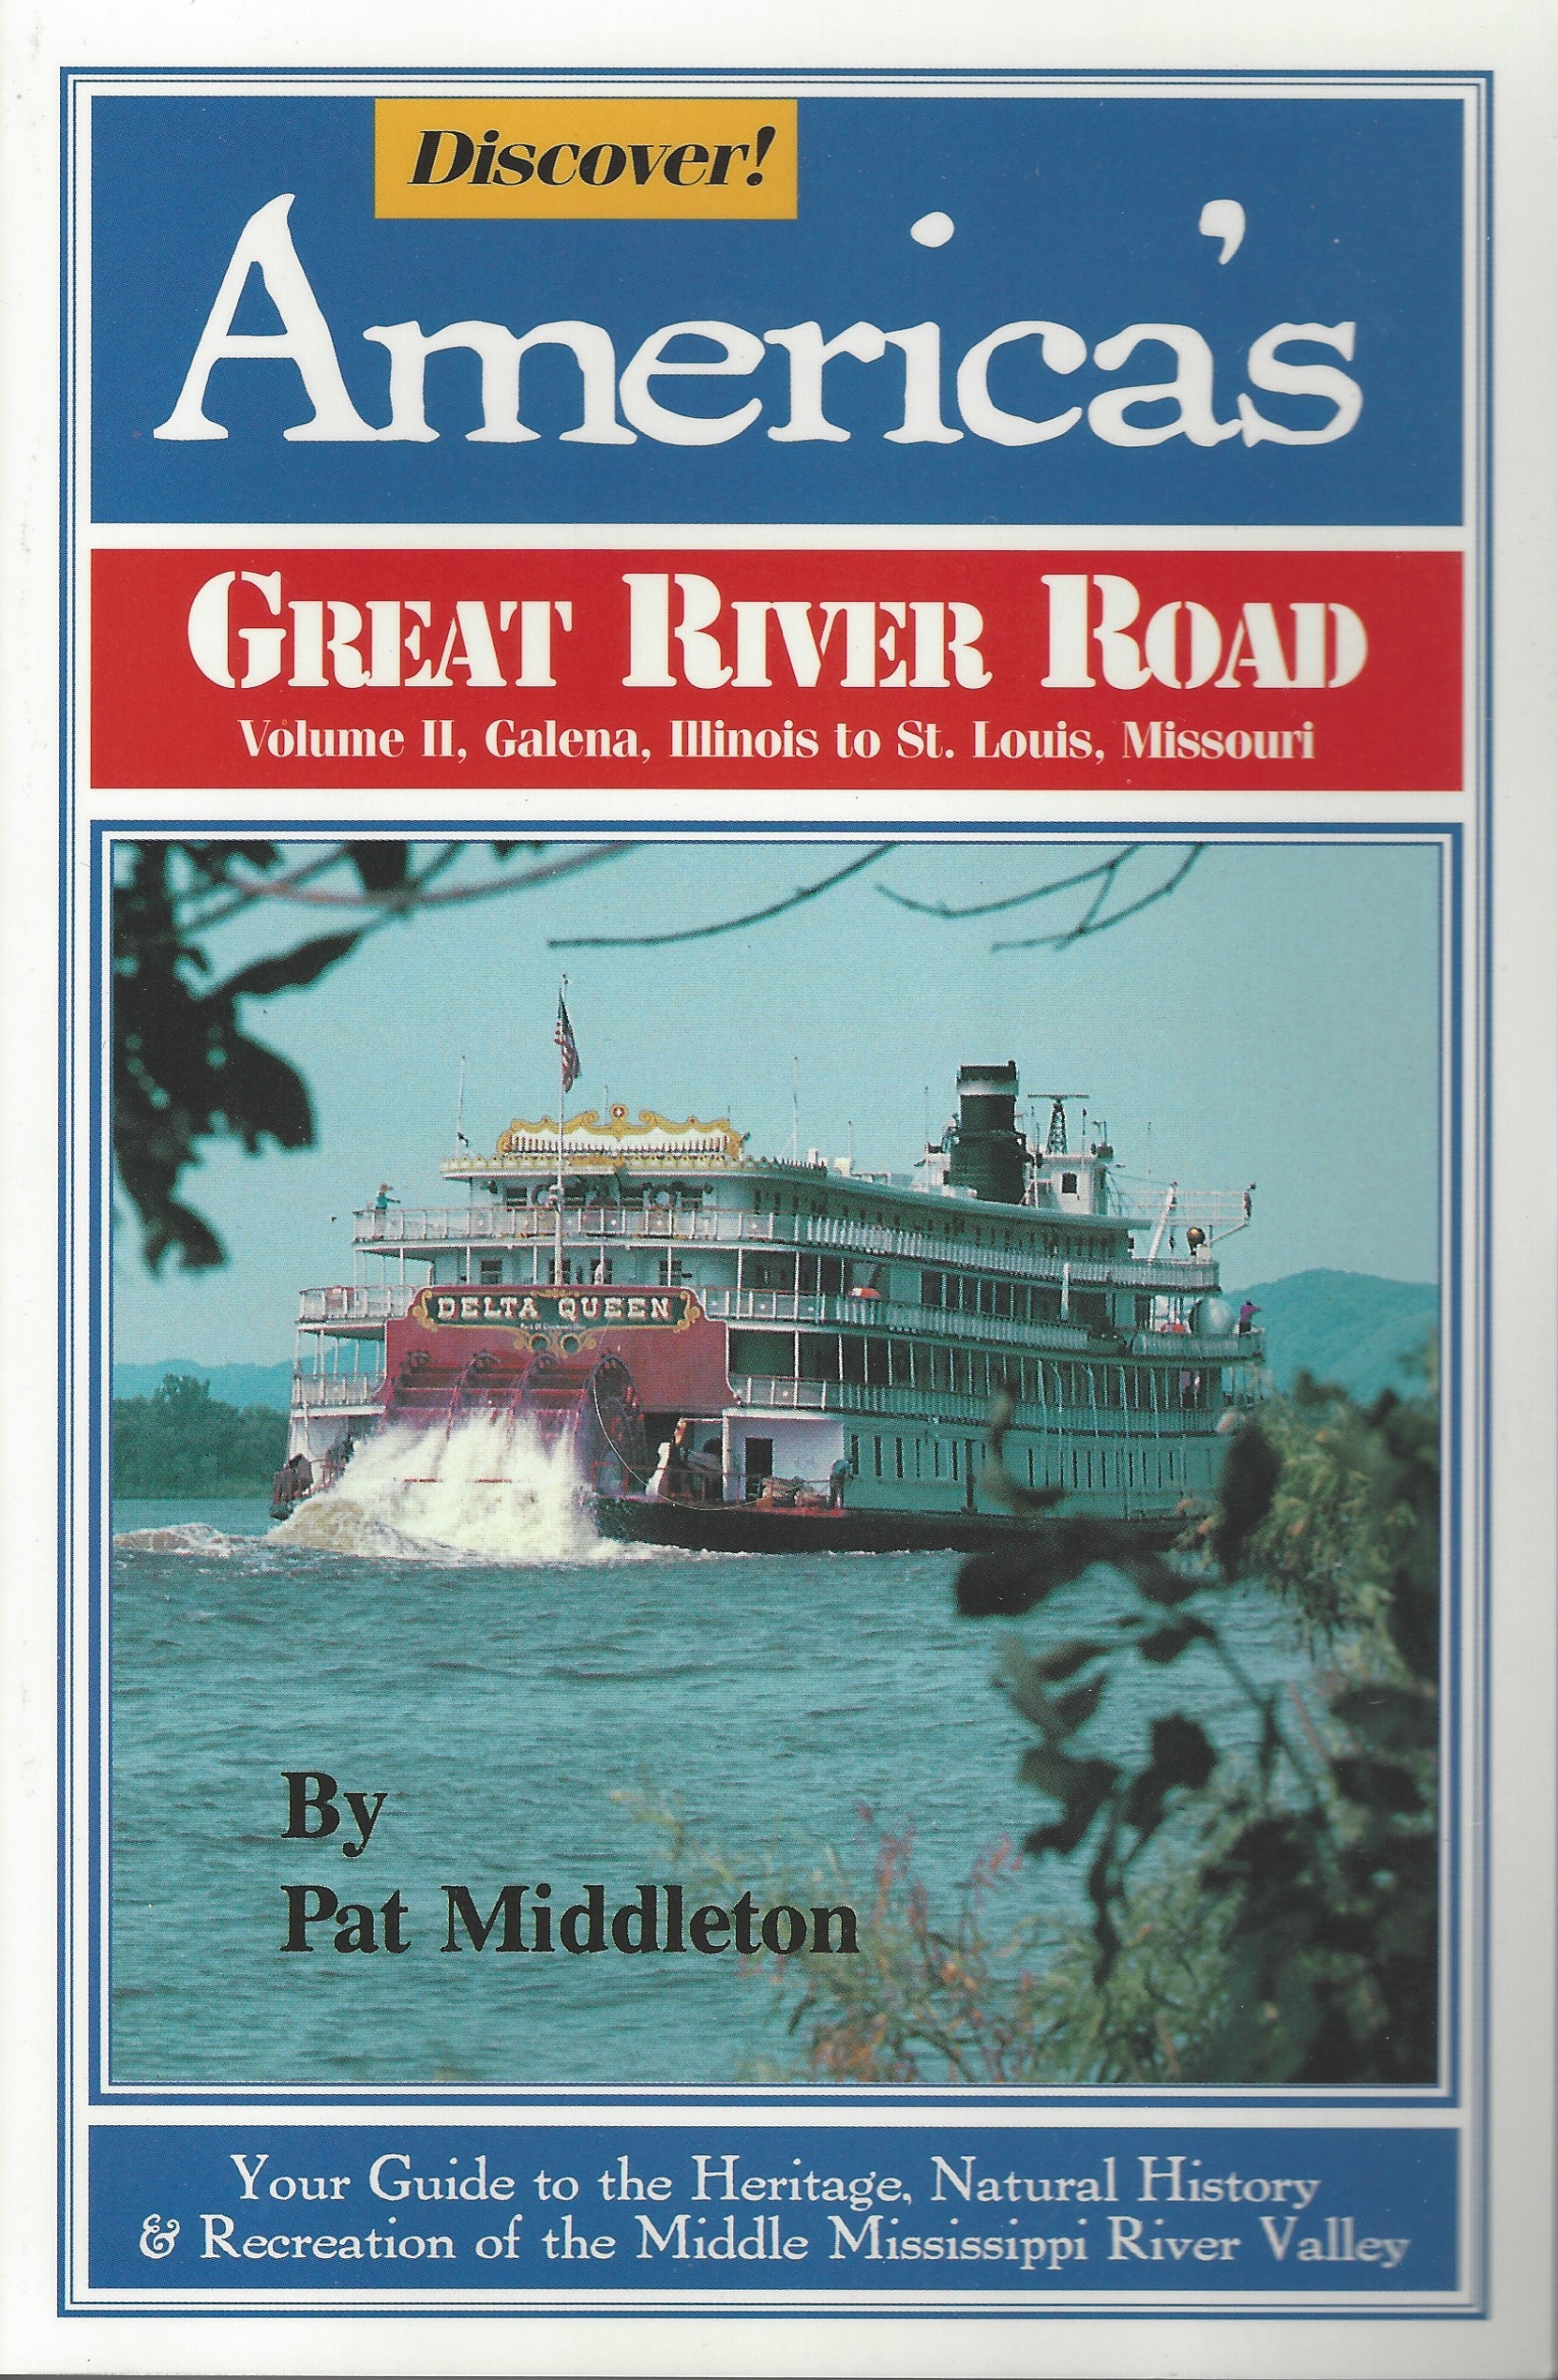 Discover America's Great River Road, Vol 2 - The Middle Mississippi River